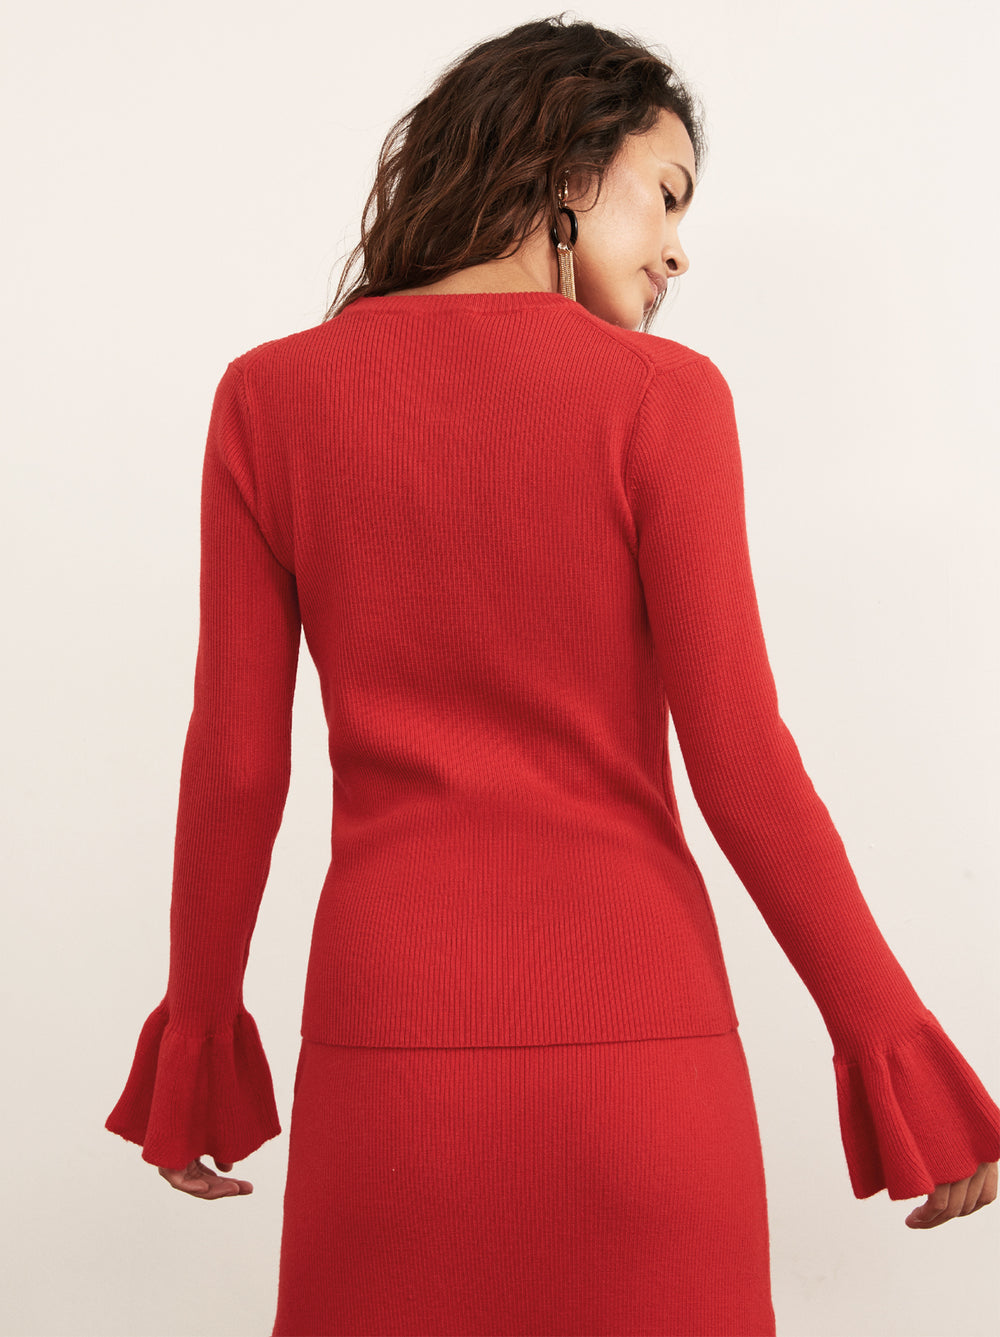 Vivien Red Merino Rib Knit Jumper by KITRI Studio